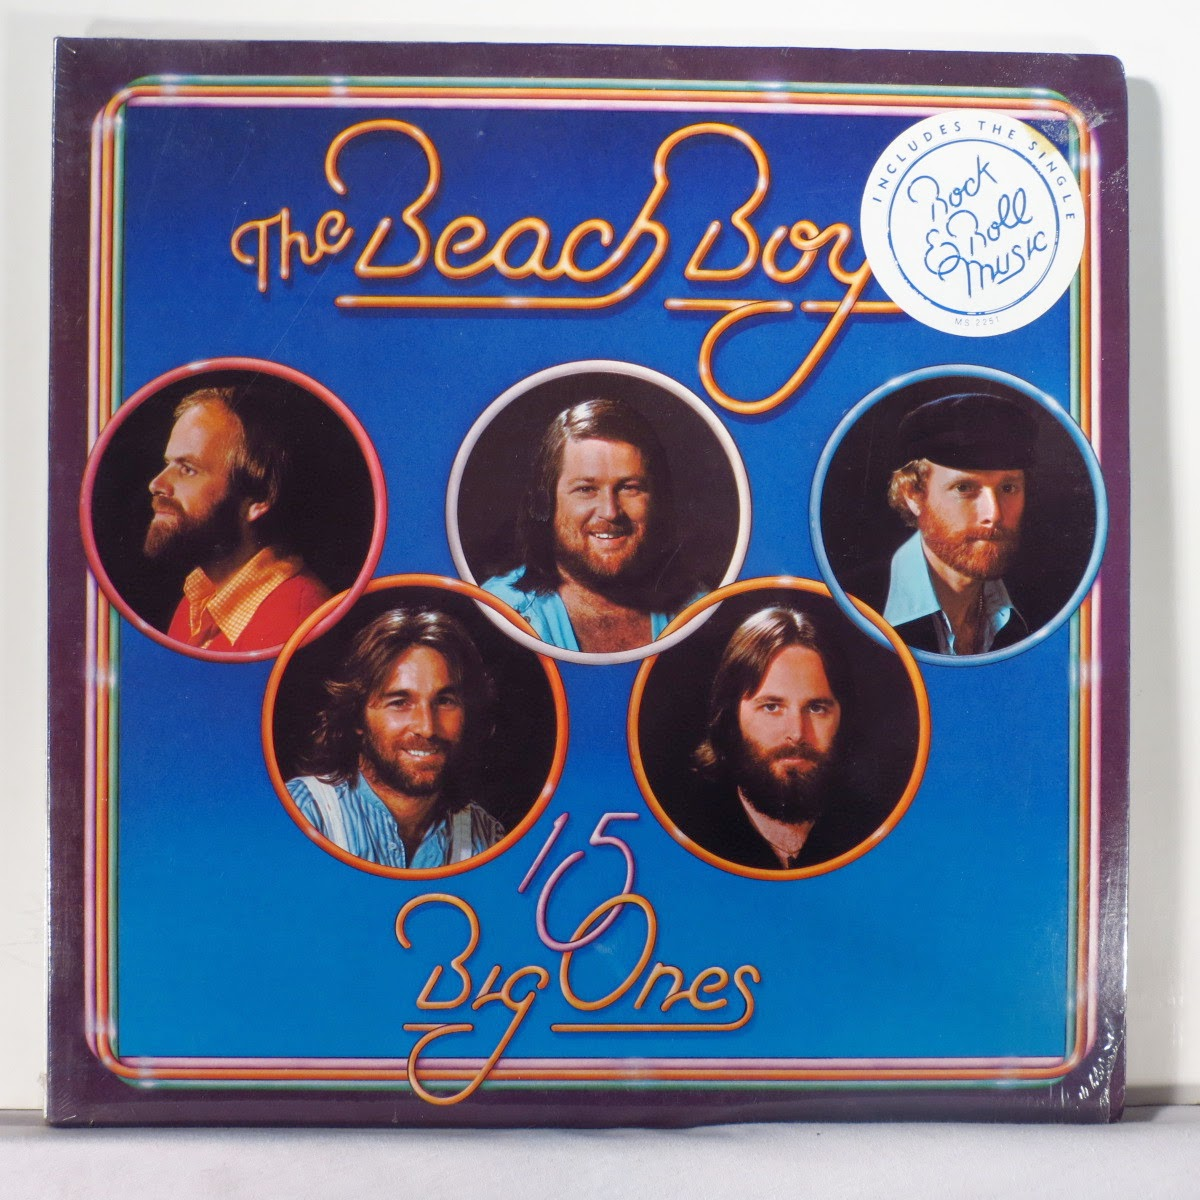 Jesse's Blog: The Beach Boys Complete Discography